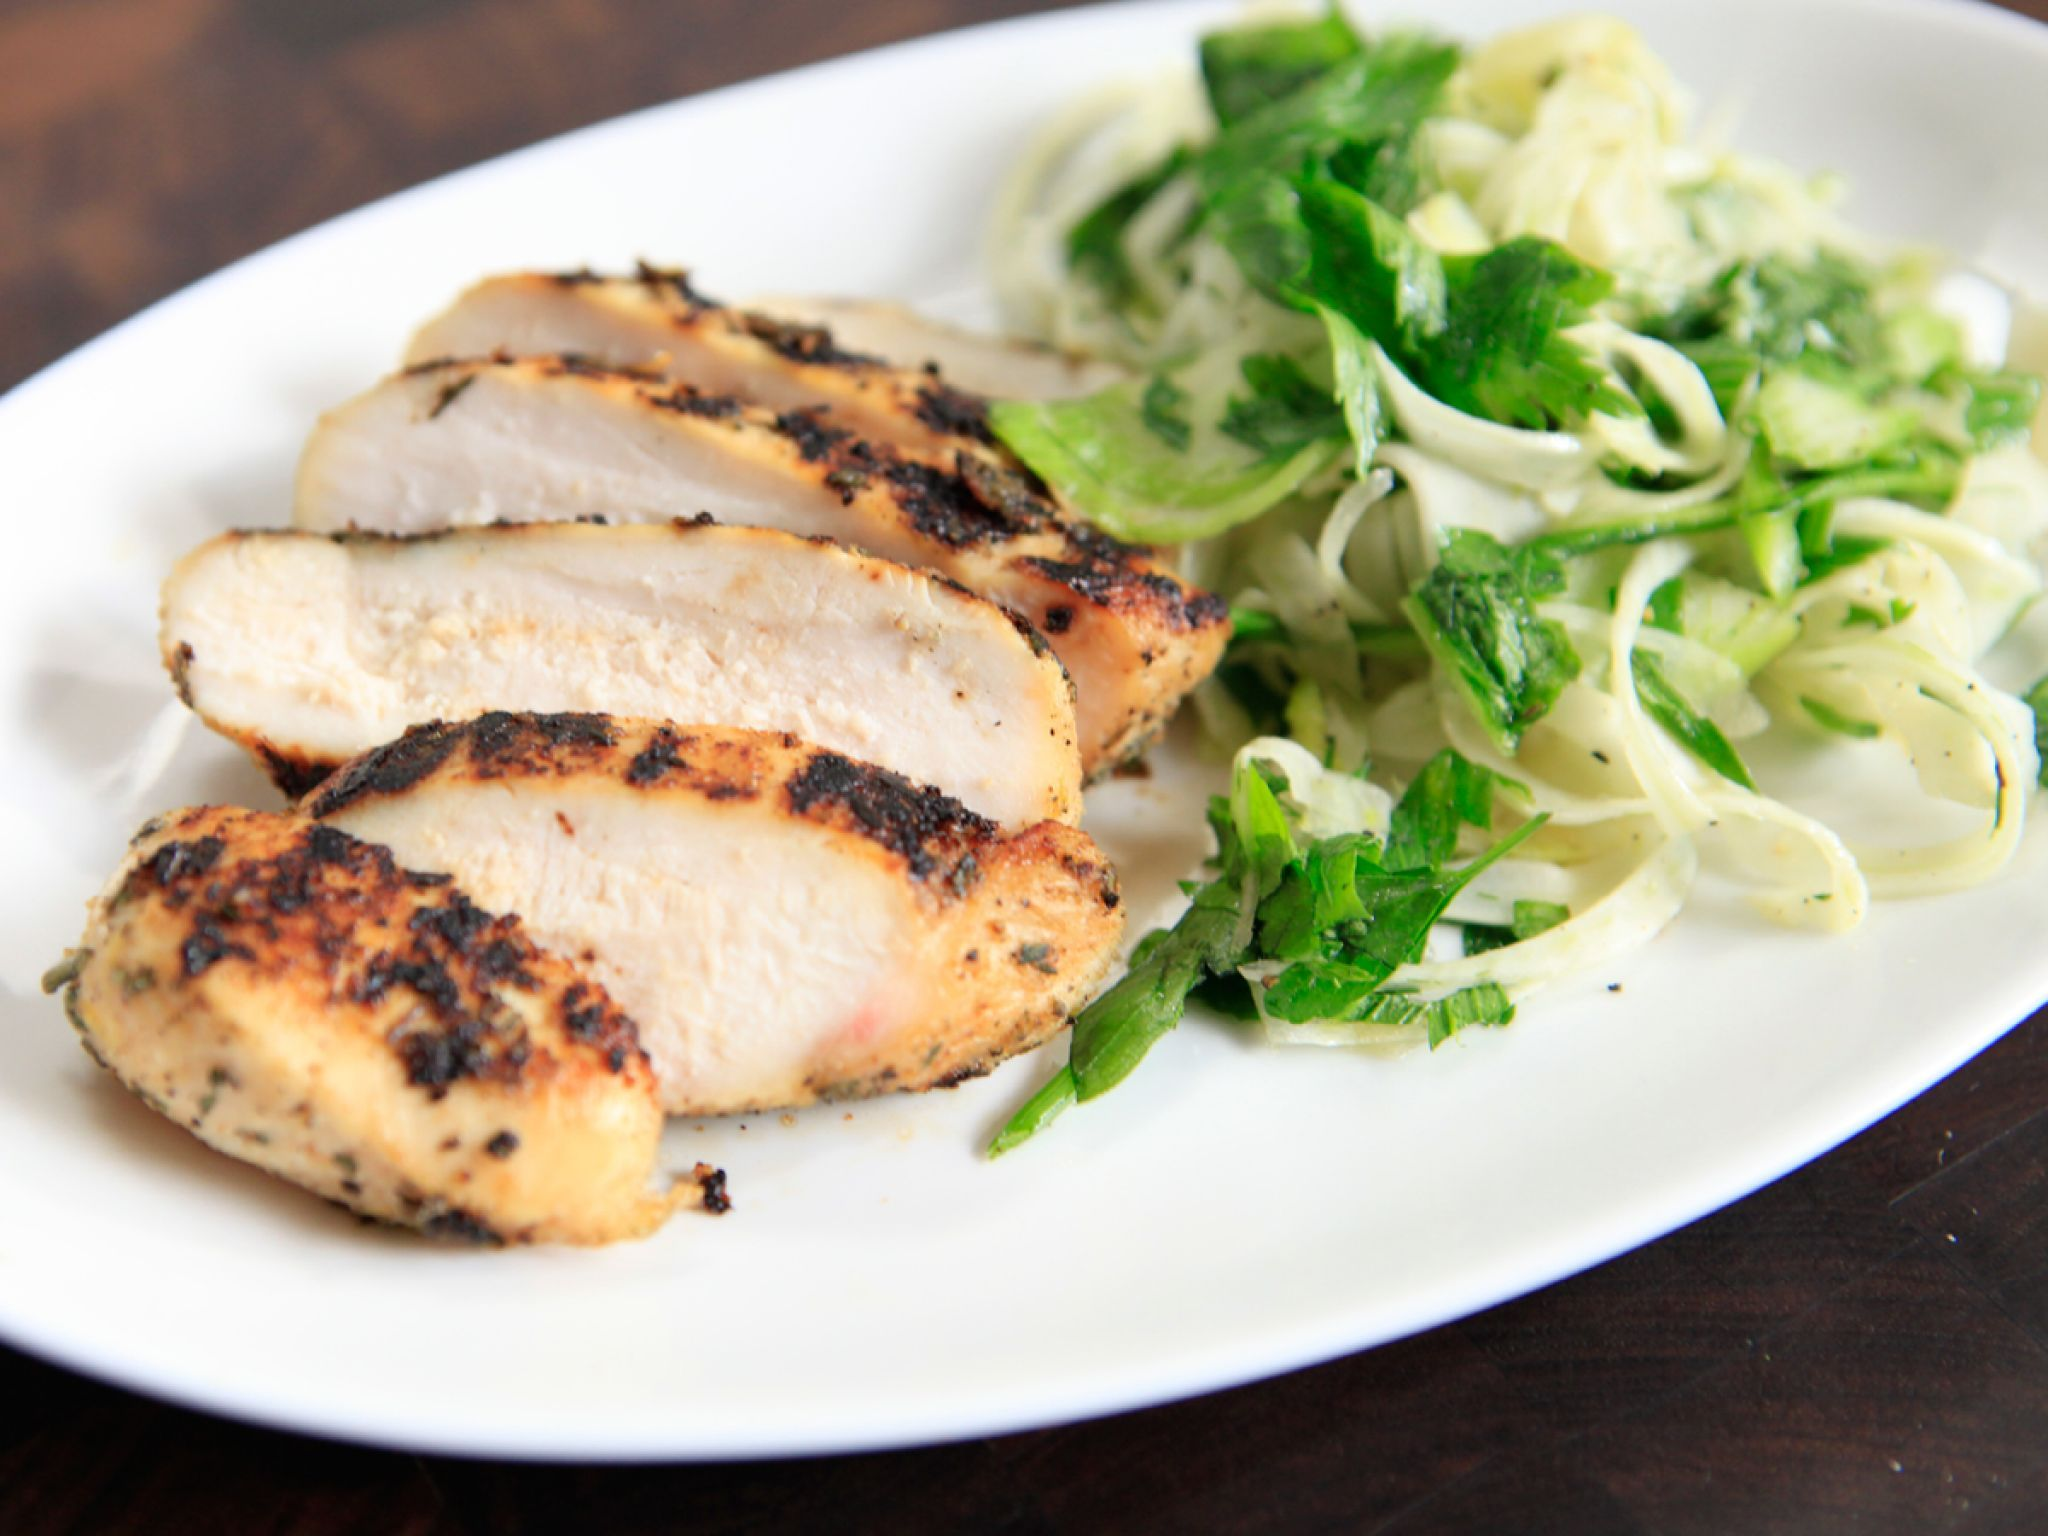 Lemon pepper cured chicken with fennel salad recipe fennel lemon pepper cured chicken with fennel salad recipe from rachael ray via food network forumfinder Image collections